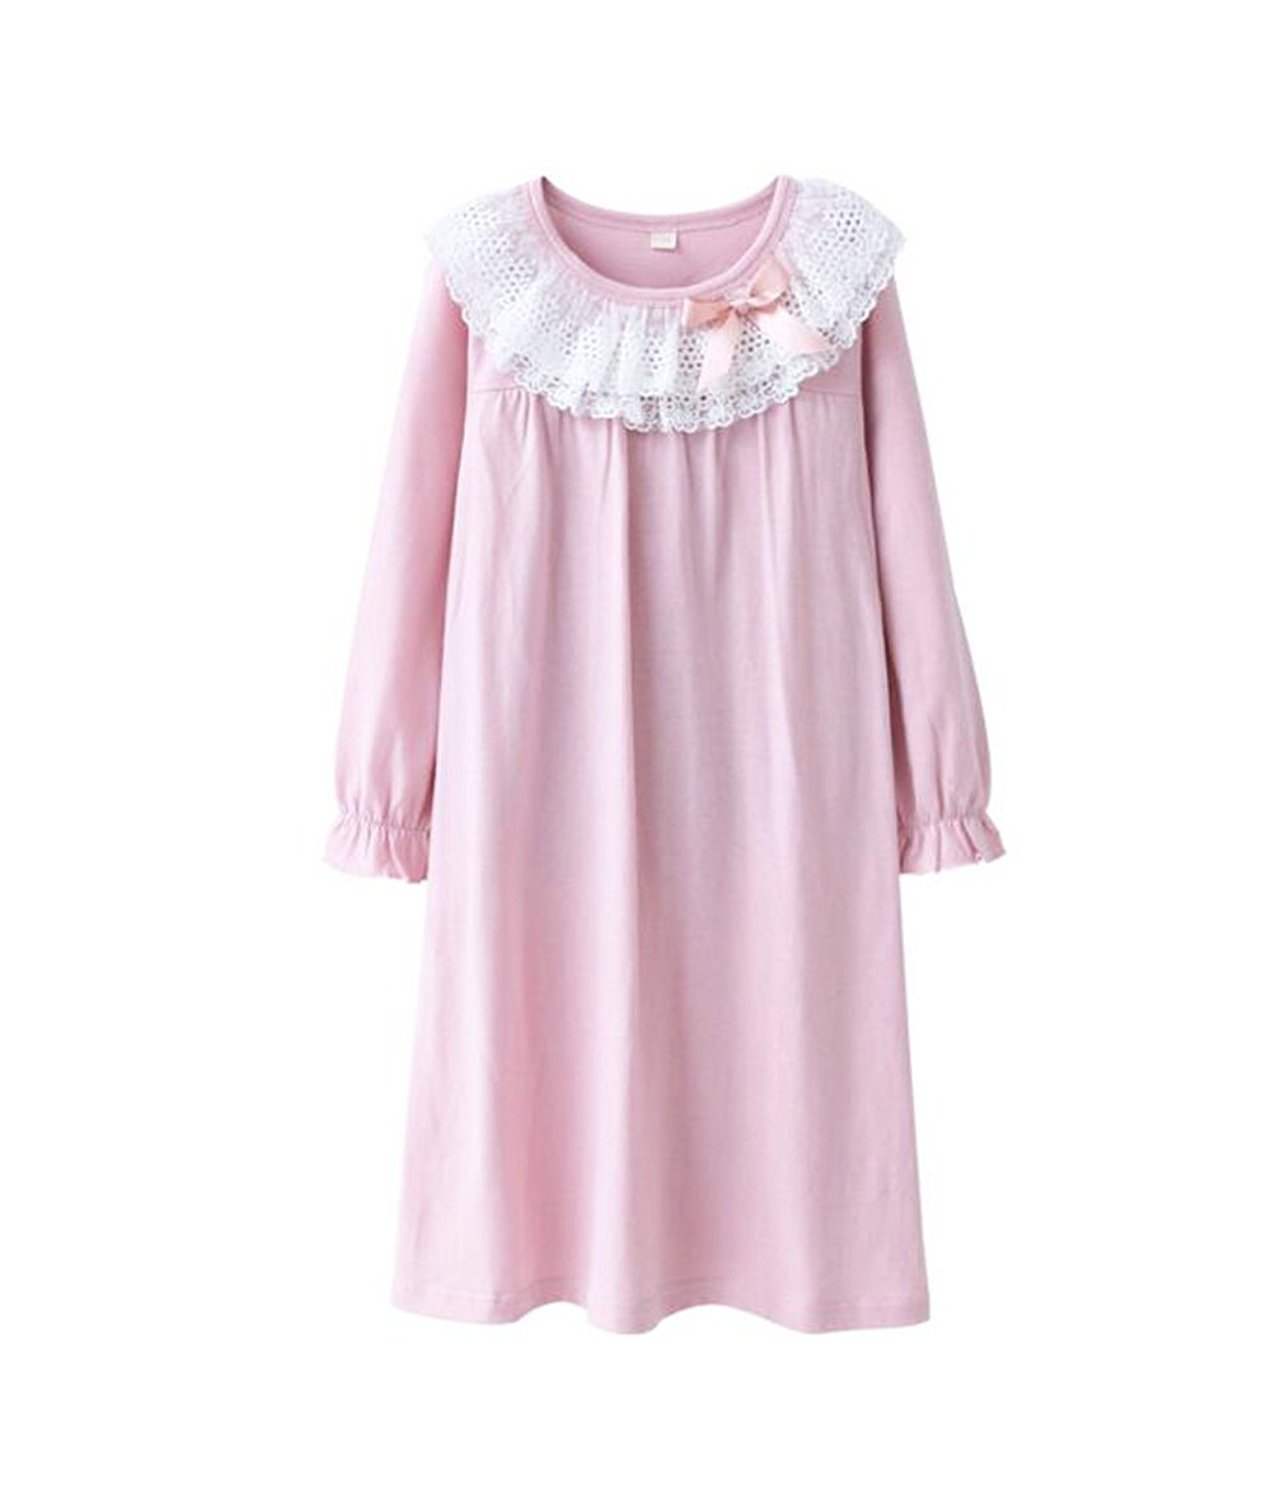 UQ Little Girls' Lace Nightgowns & Bowknot Sleep Shirts 100% Cotton Sleepwear for Toddler 3-9 Years